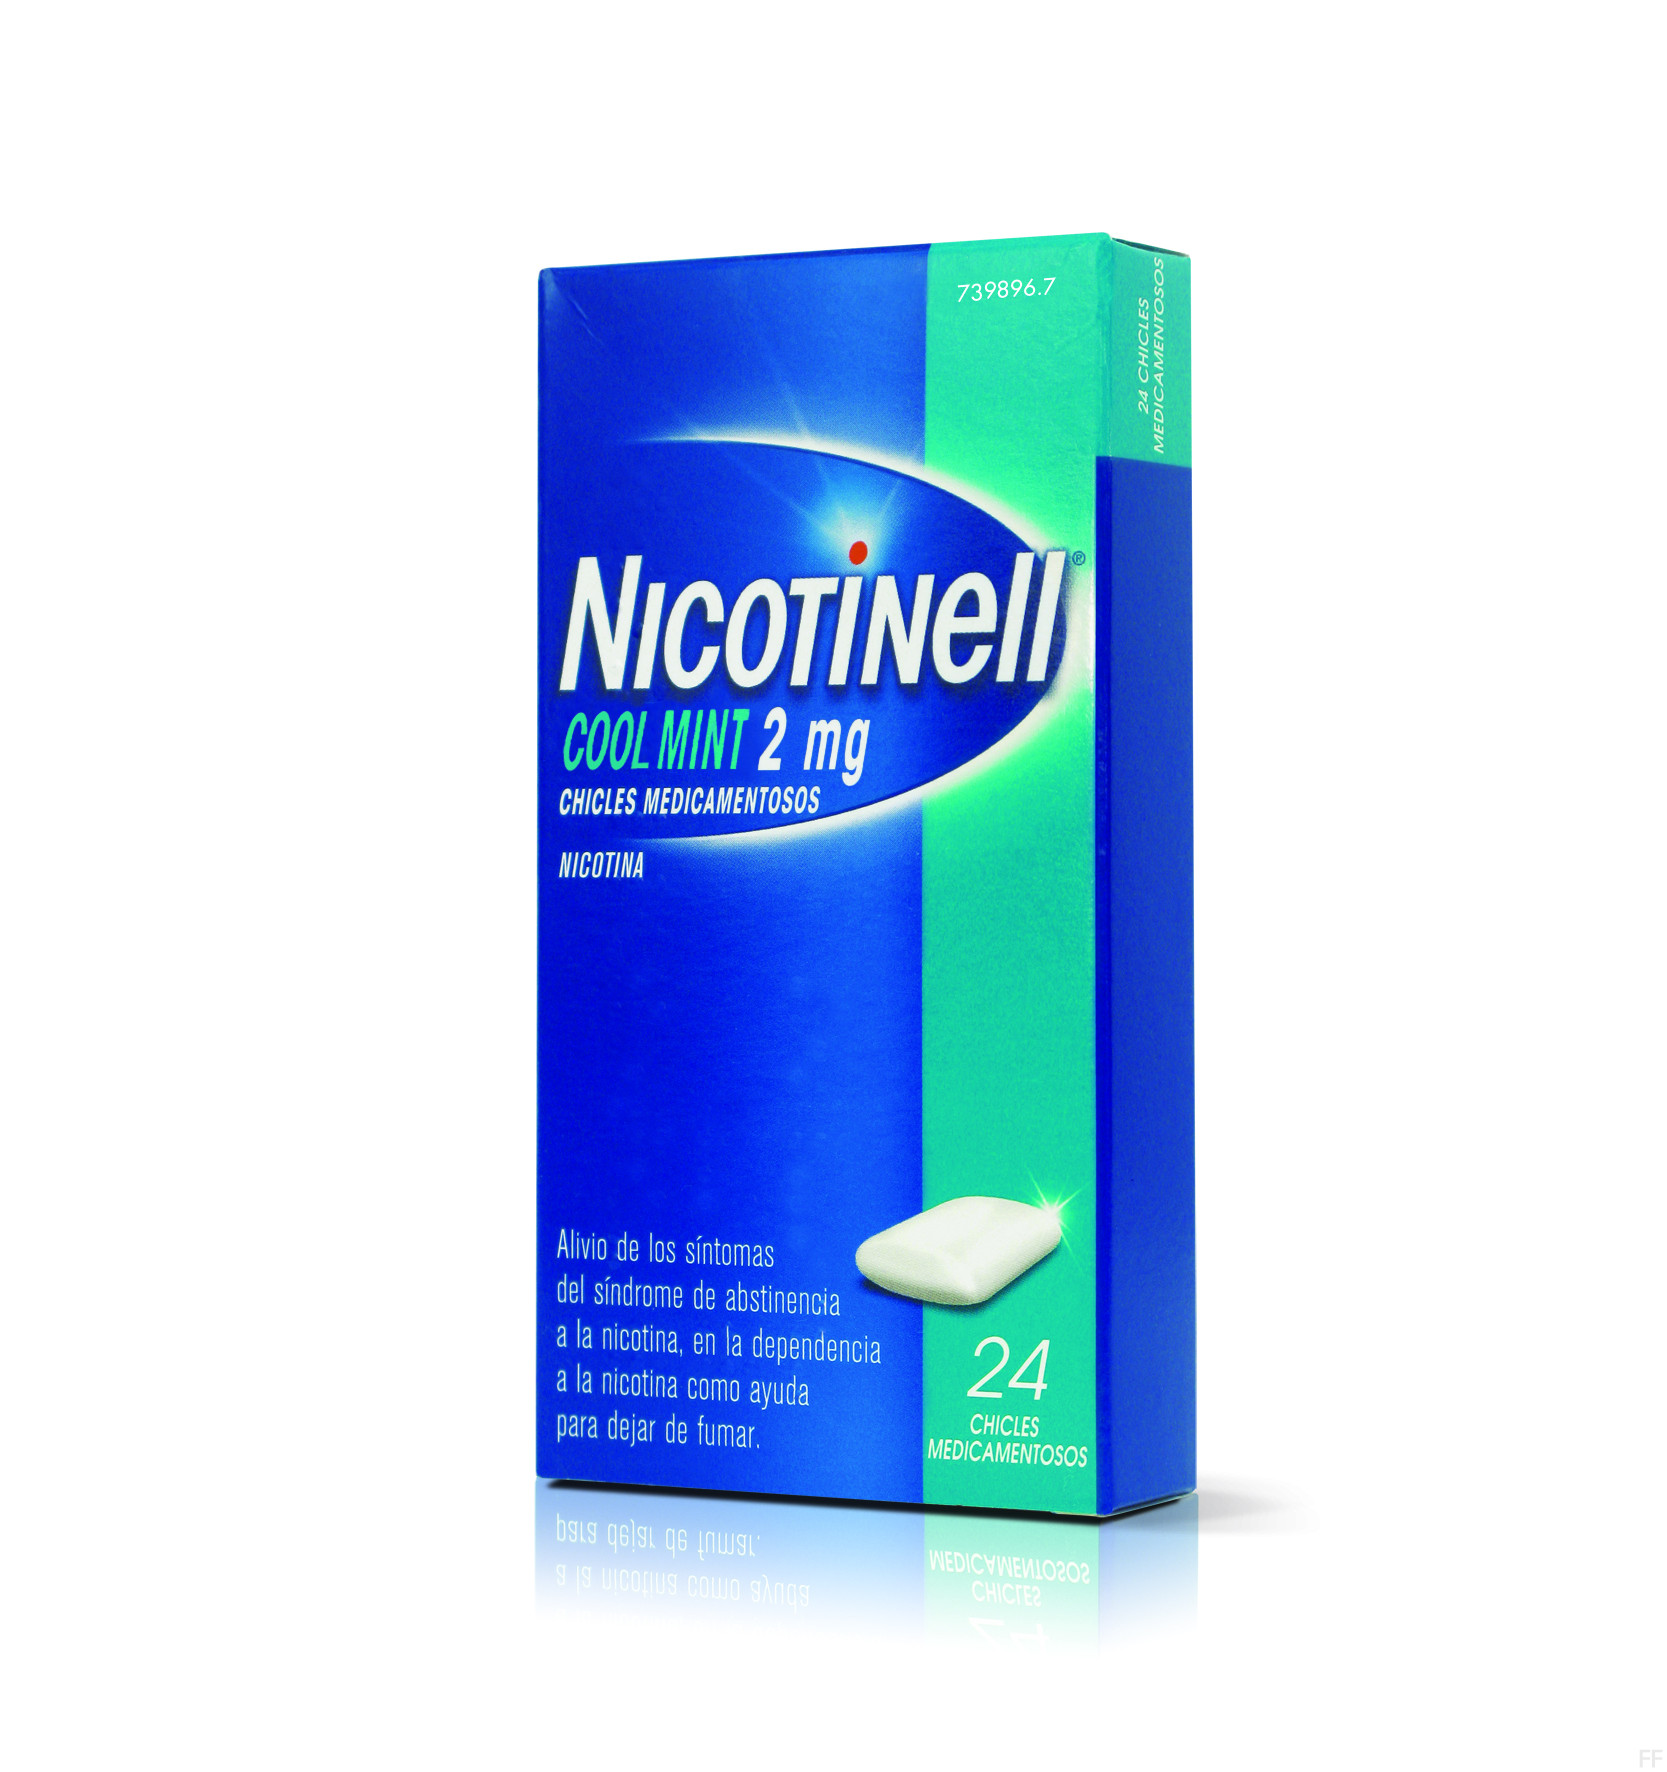 Nicotinell chicles cool mint 2 mg